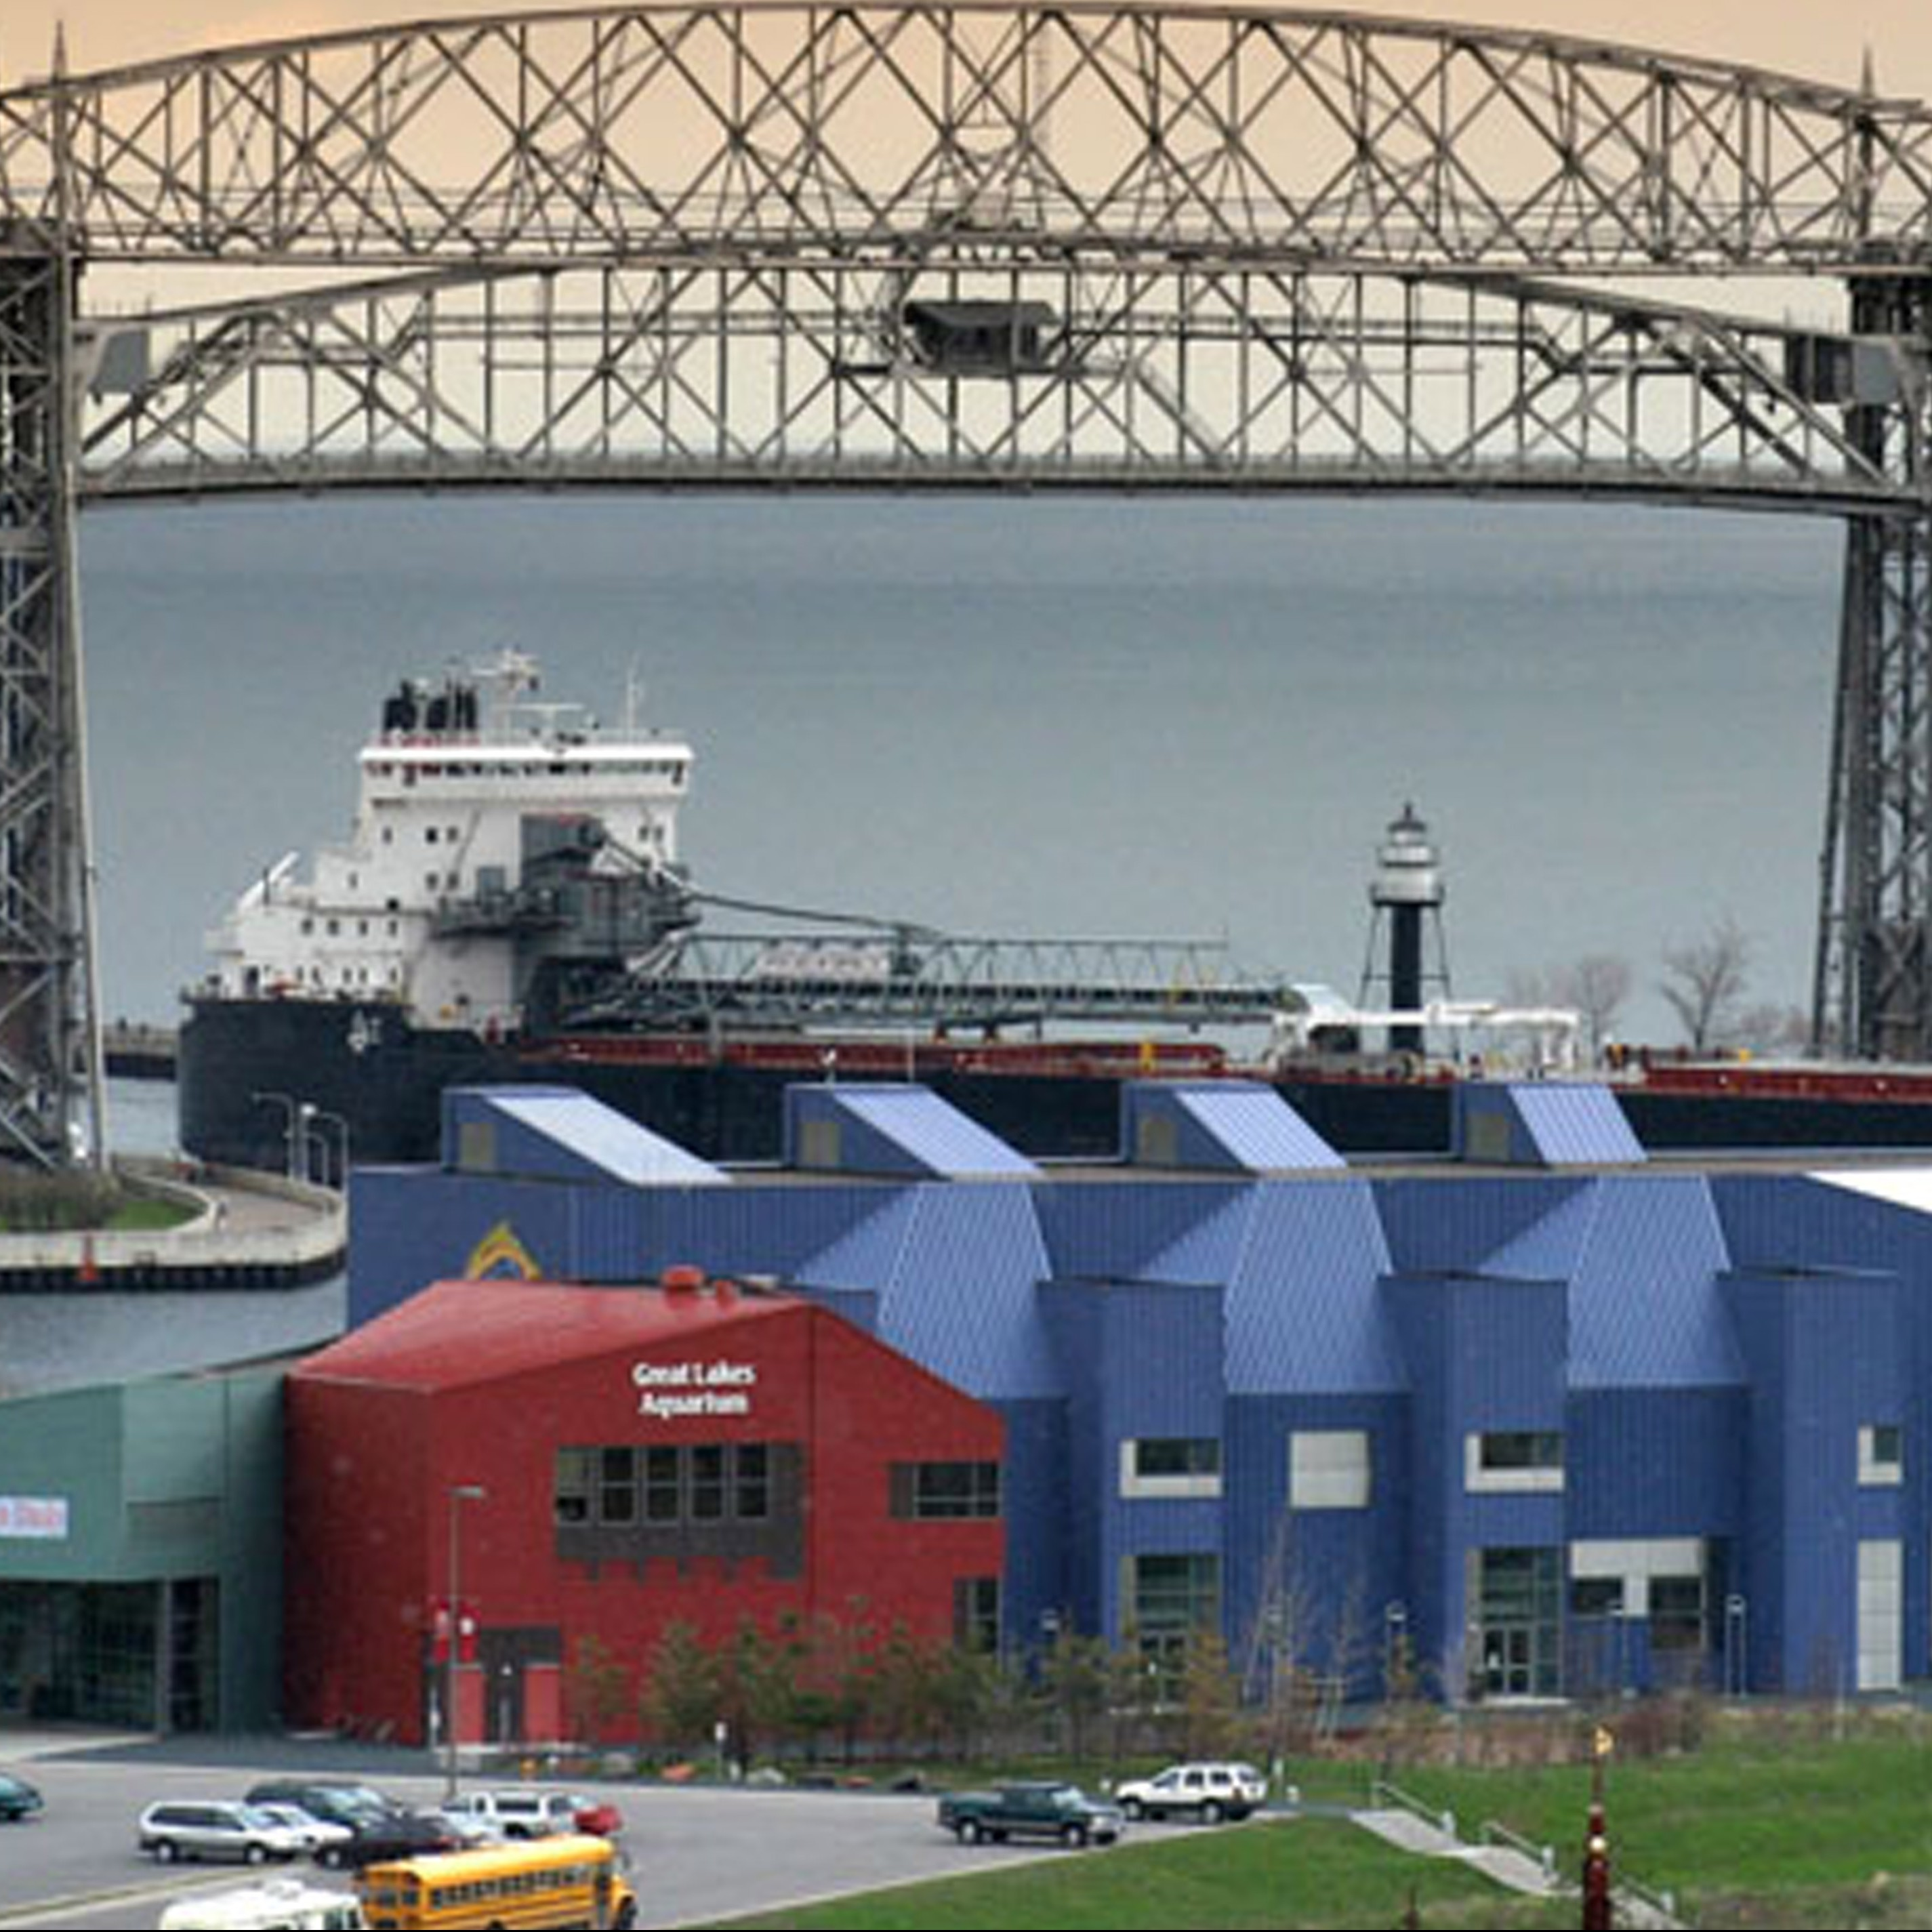 Great Lake Aquarium in front of Duluth aerial lift bridge